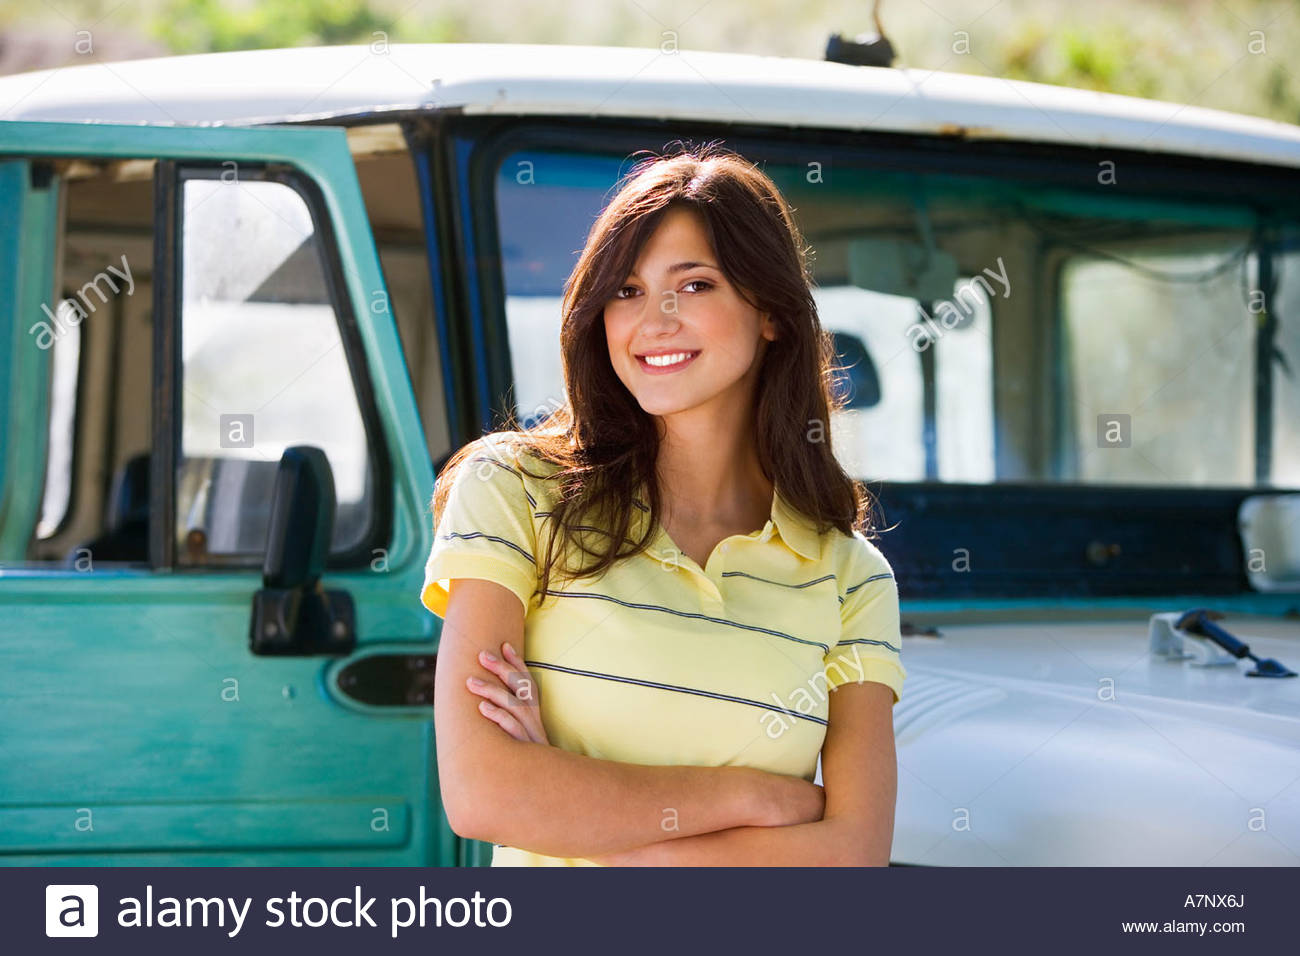 Young woman standing beside parked jeep arms folded smiling portrait - Stock Image